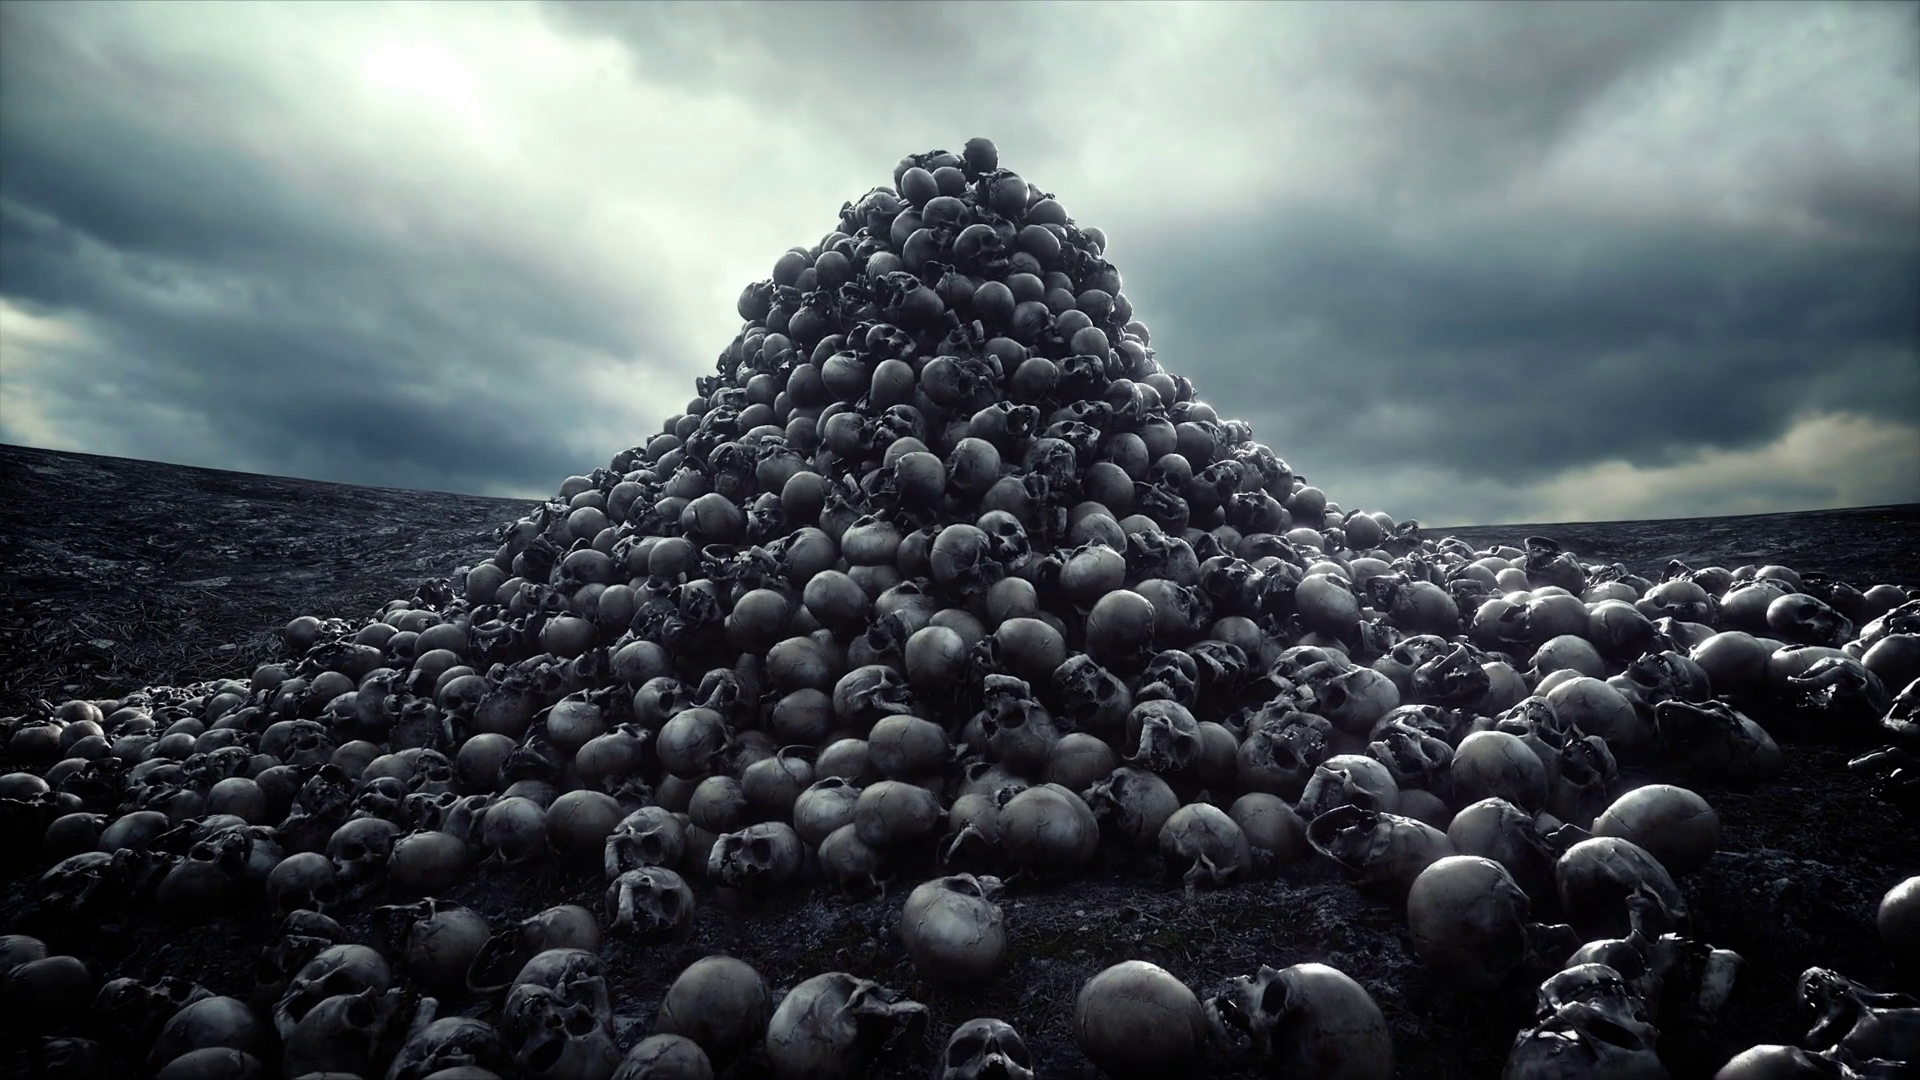 Pile Of Skulls Png, png collections at sccpre.cat.